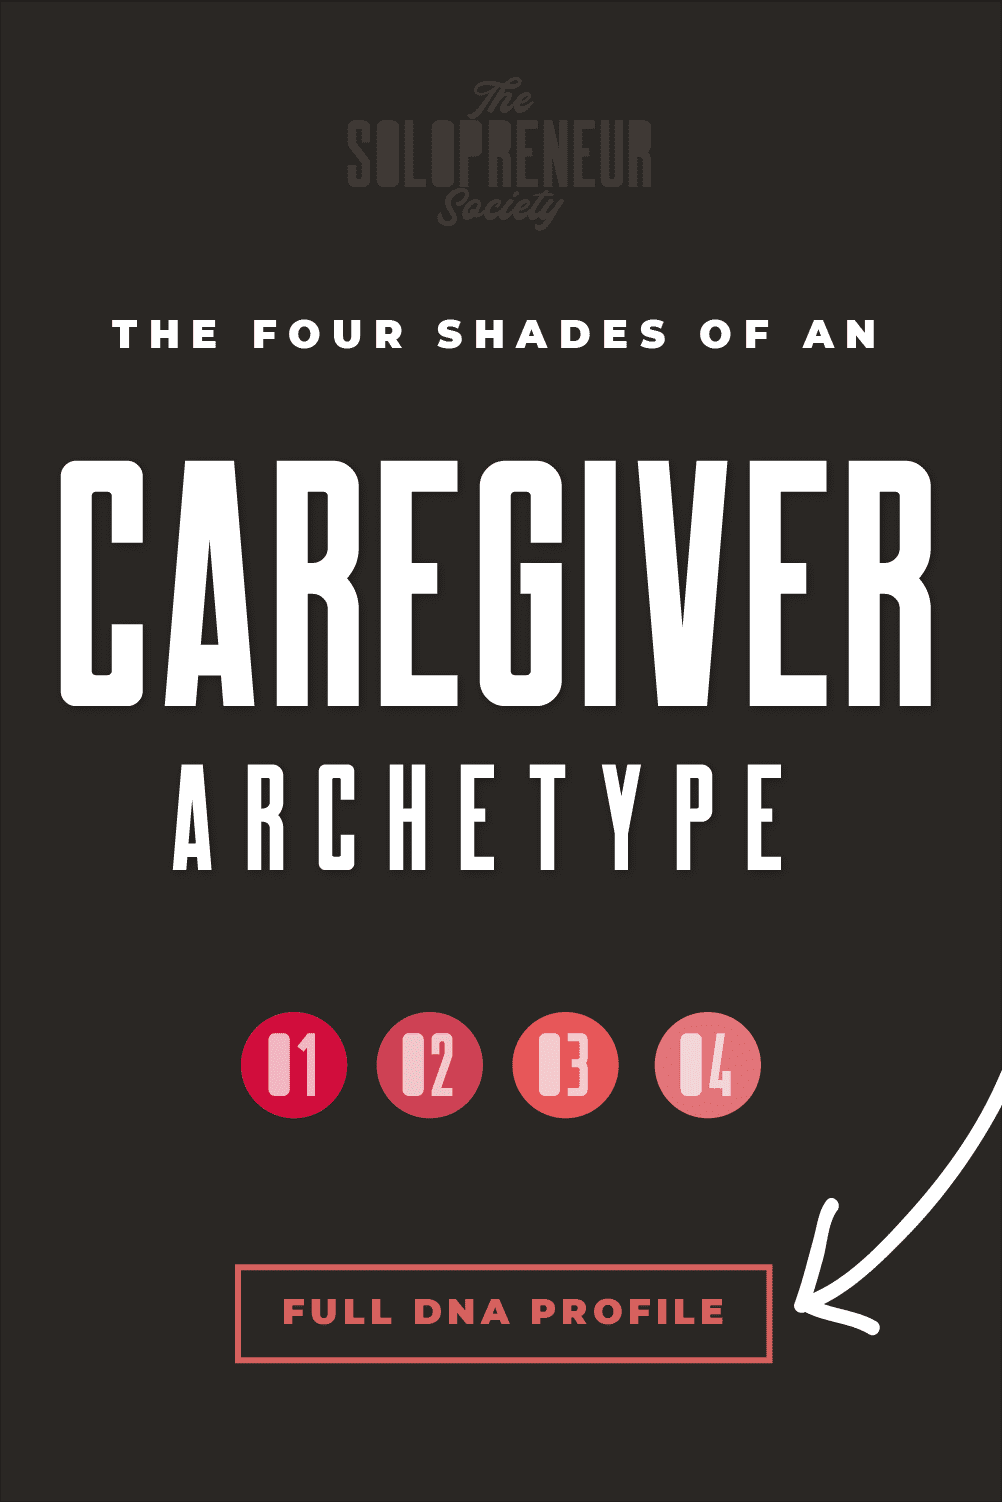 Caregiver Archetype Brand Personality